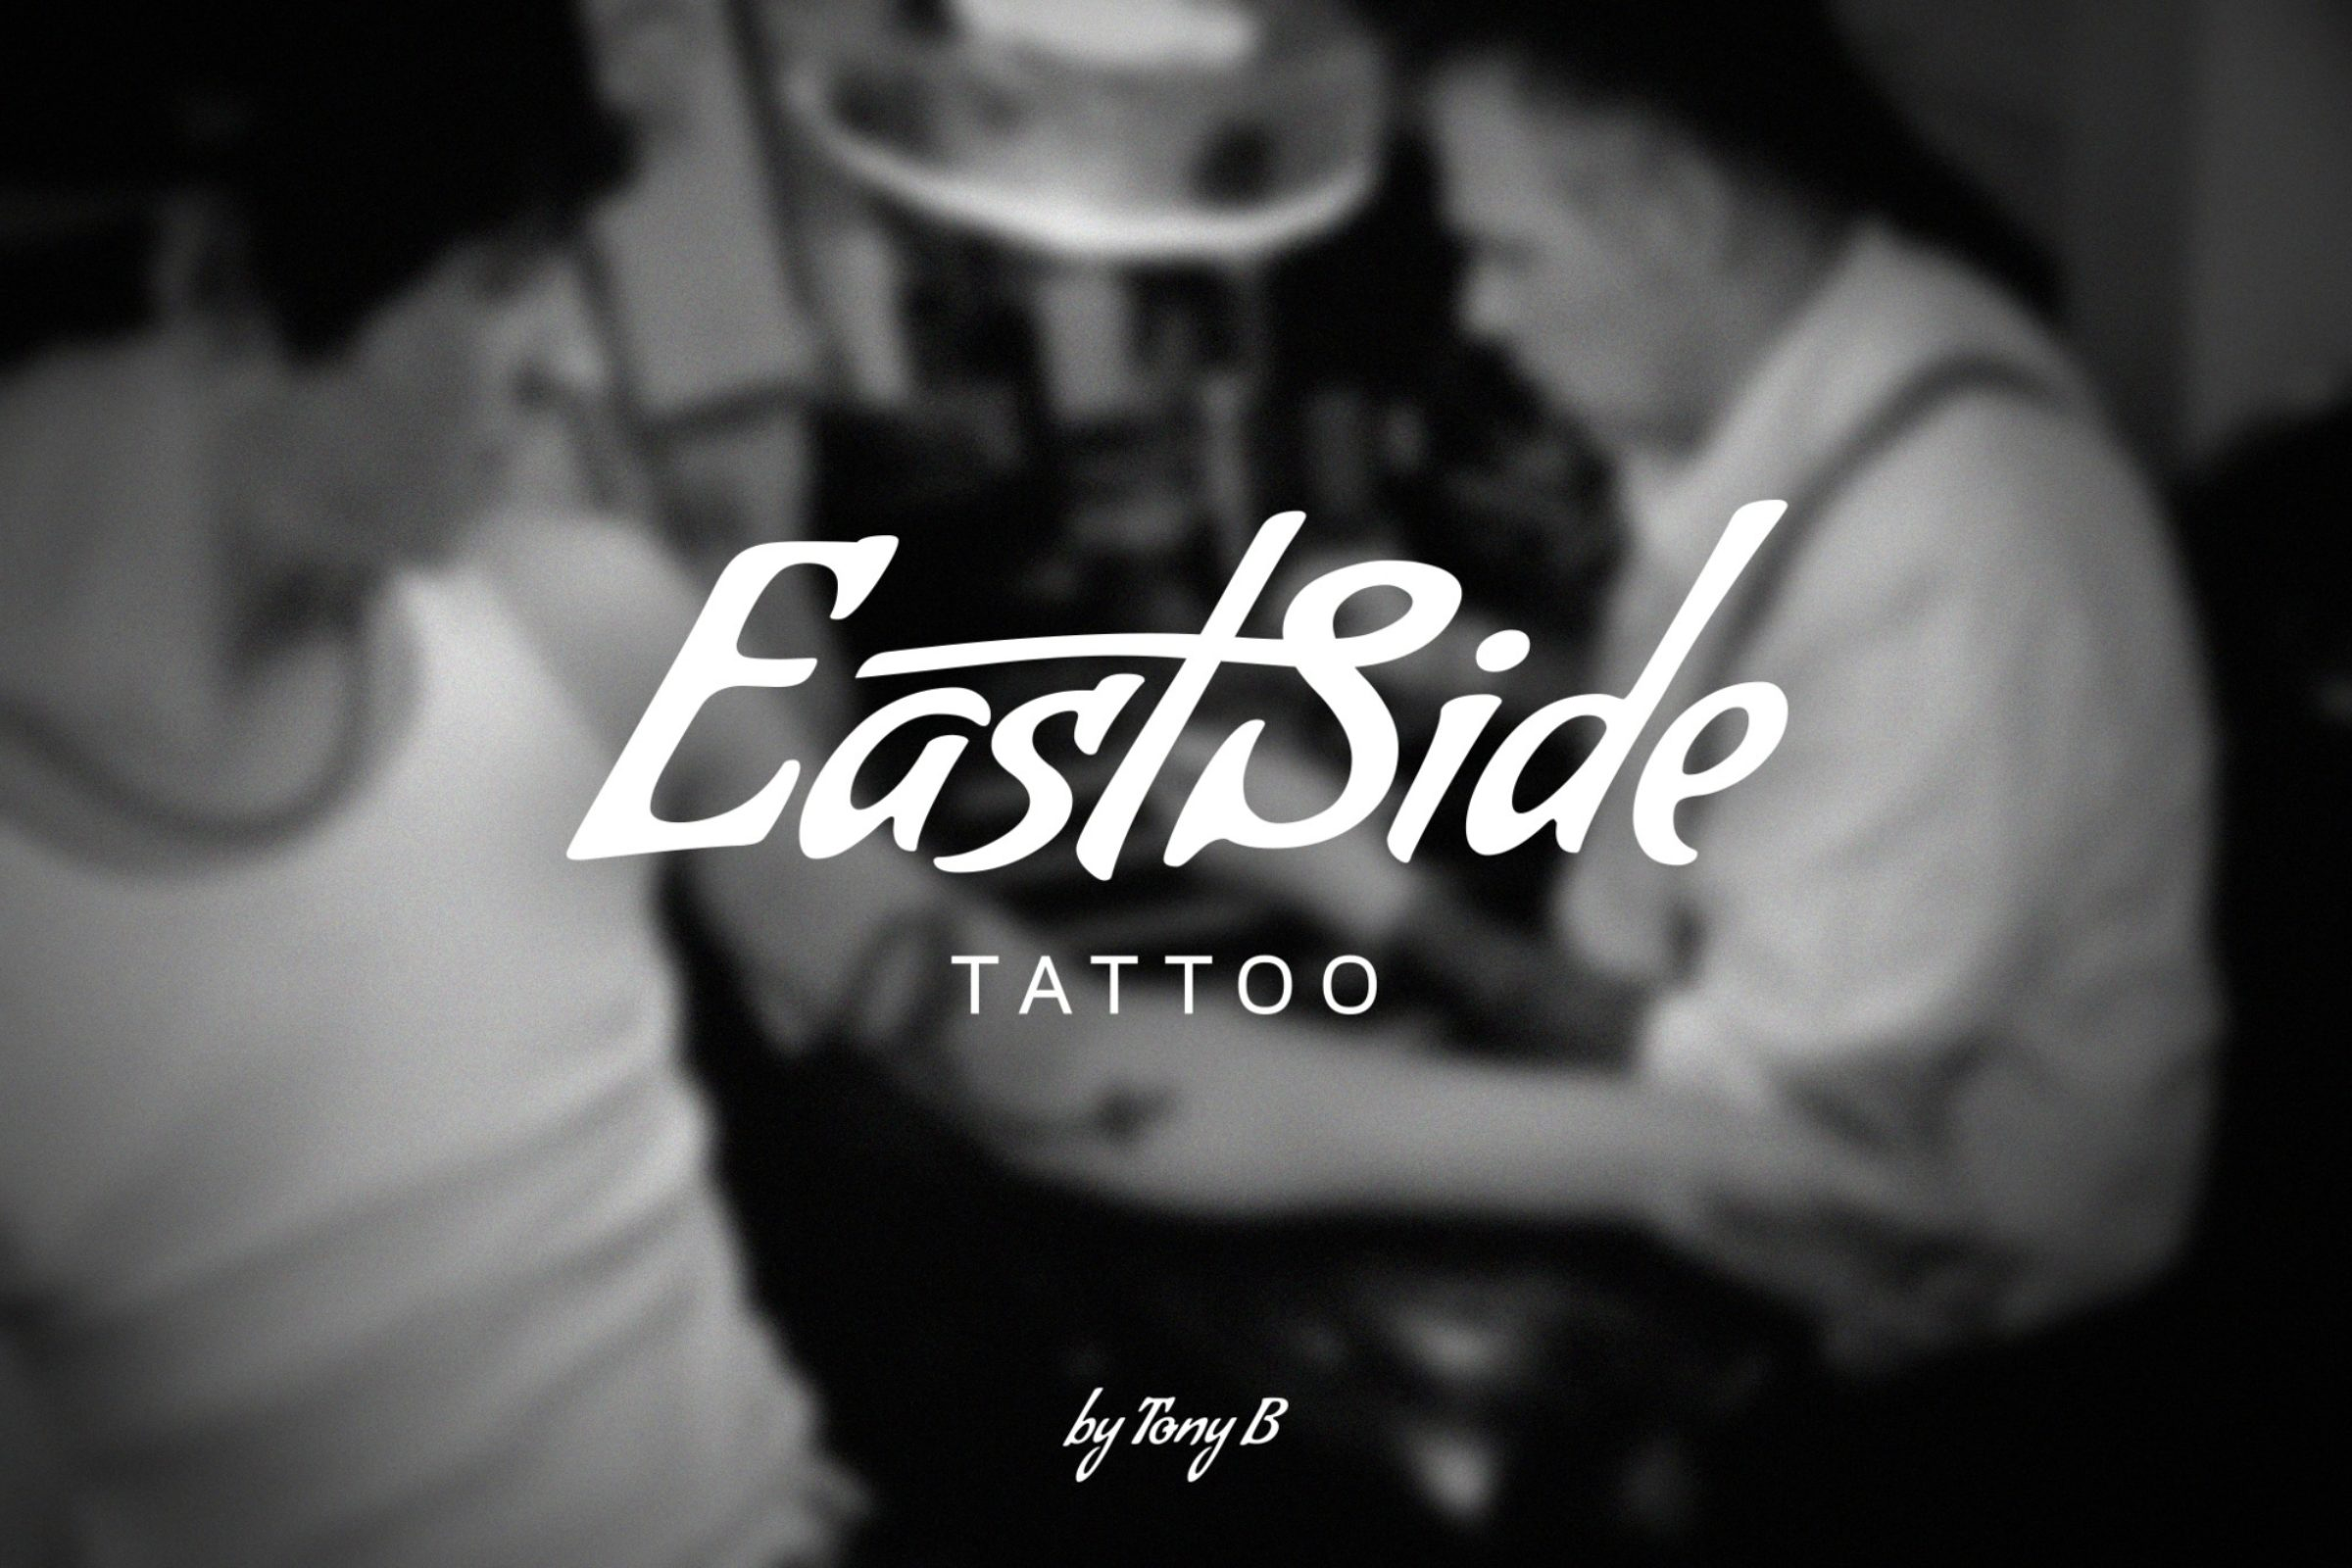 00 Logo Eastside Tattoo Diap